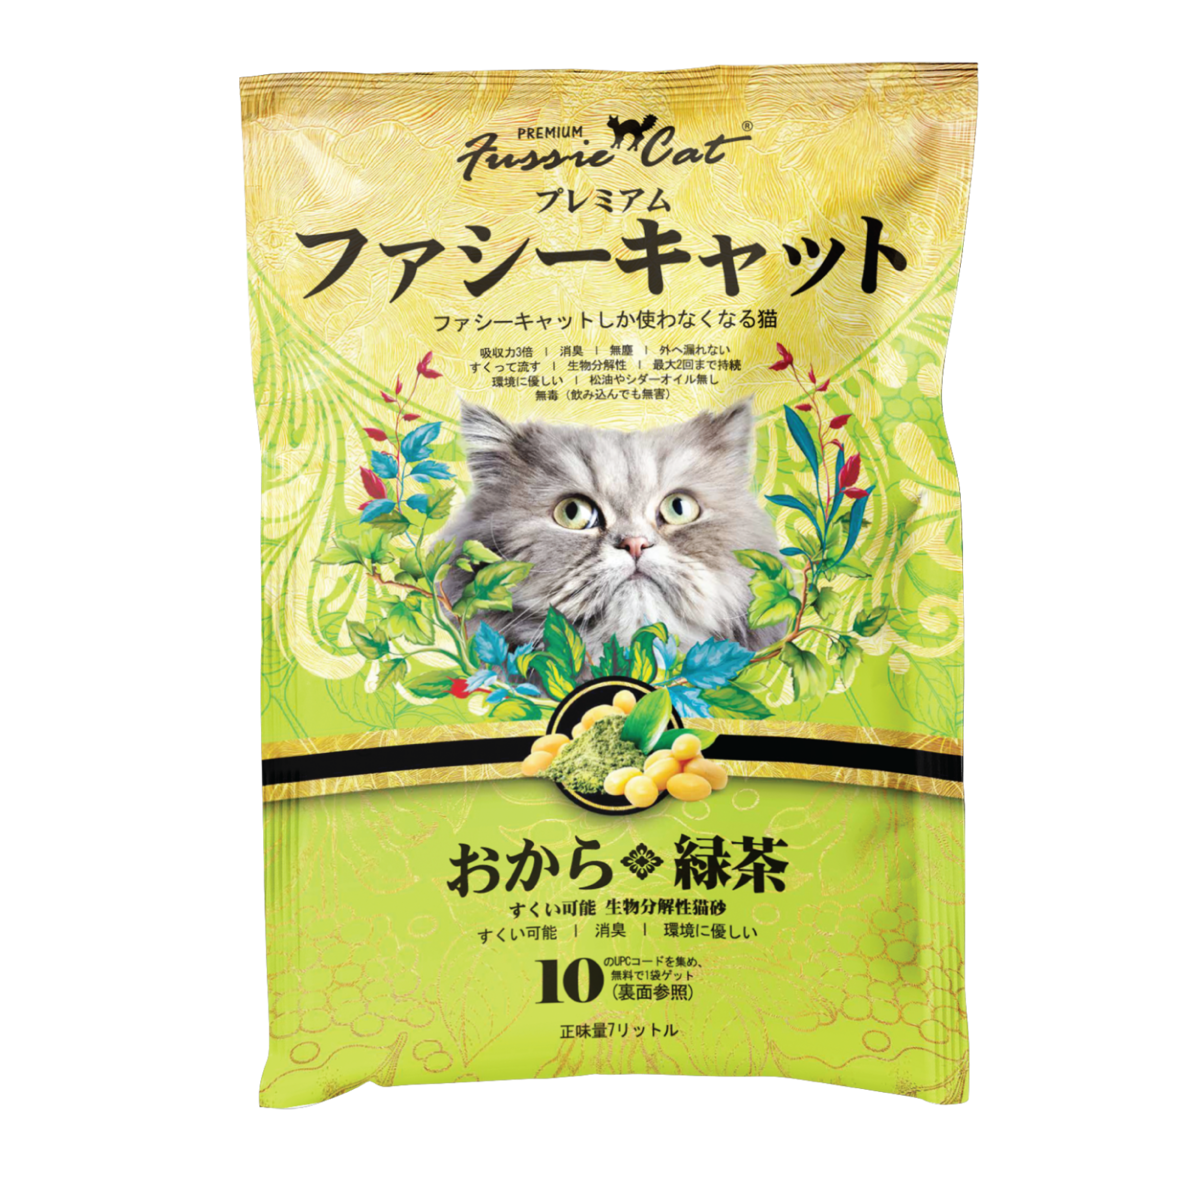 Fussie Cat Soybean Green Tea Litter (Japanese)